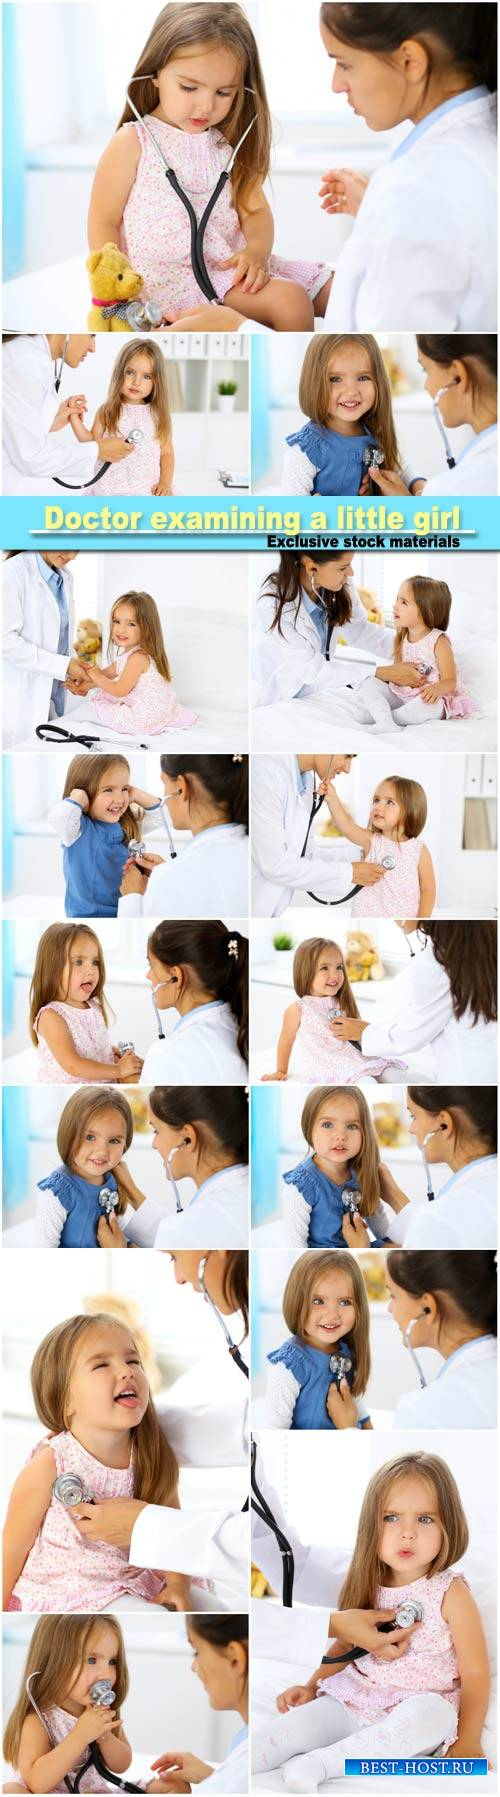 Doctor examining a little girl by stethoscope